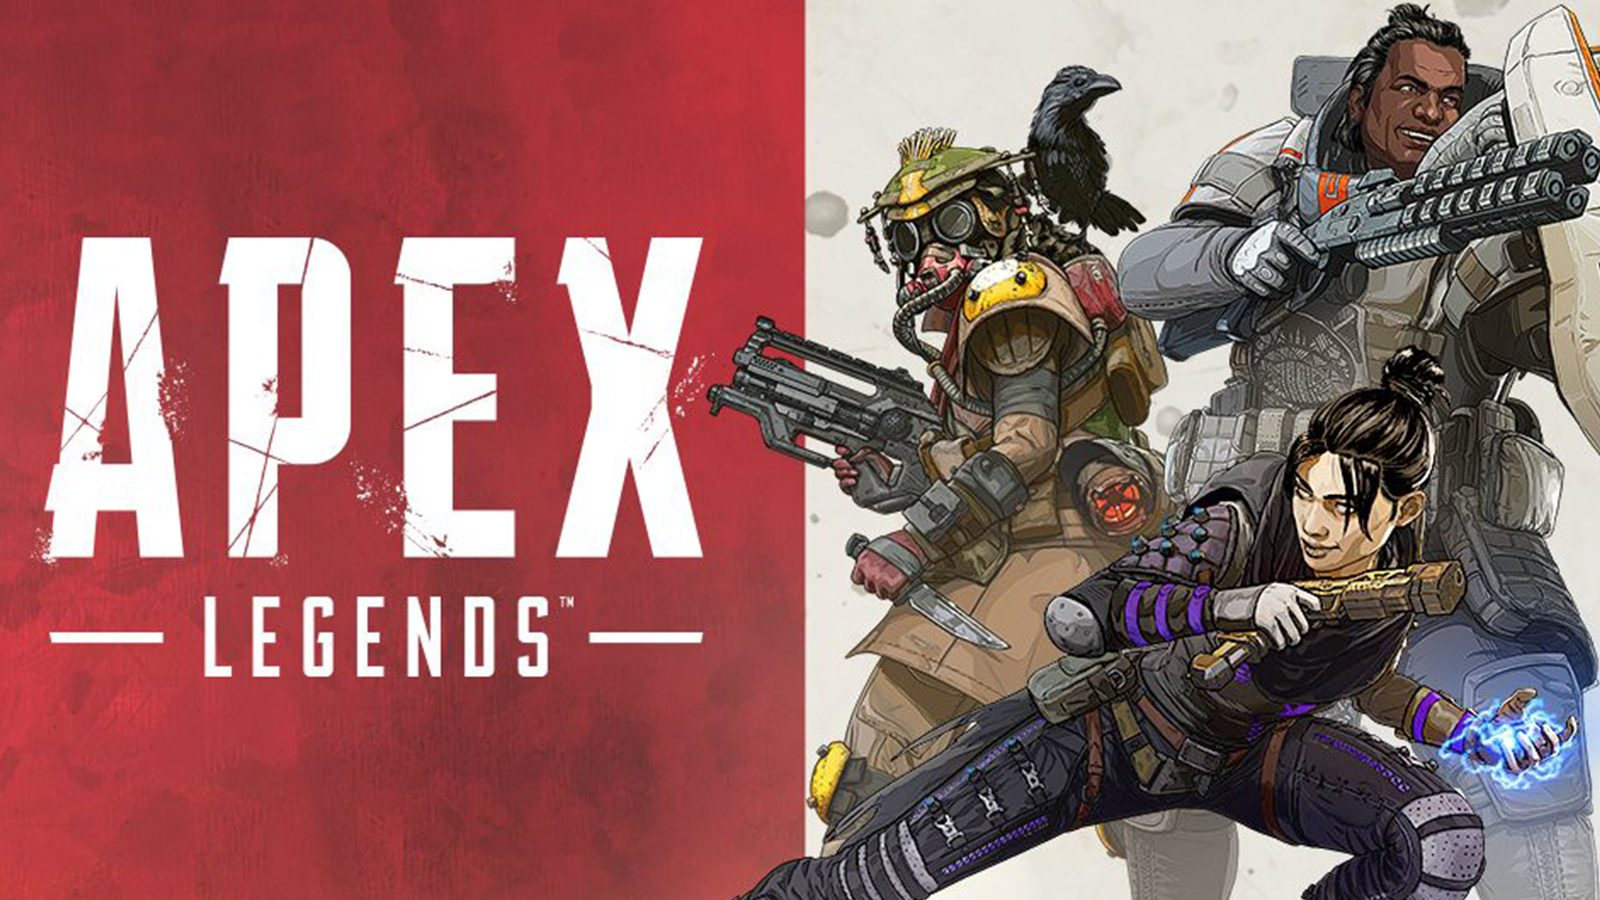 apex legends ot 60 urovnya [origin] + skidka 199 rur